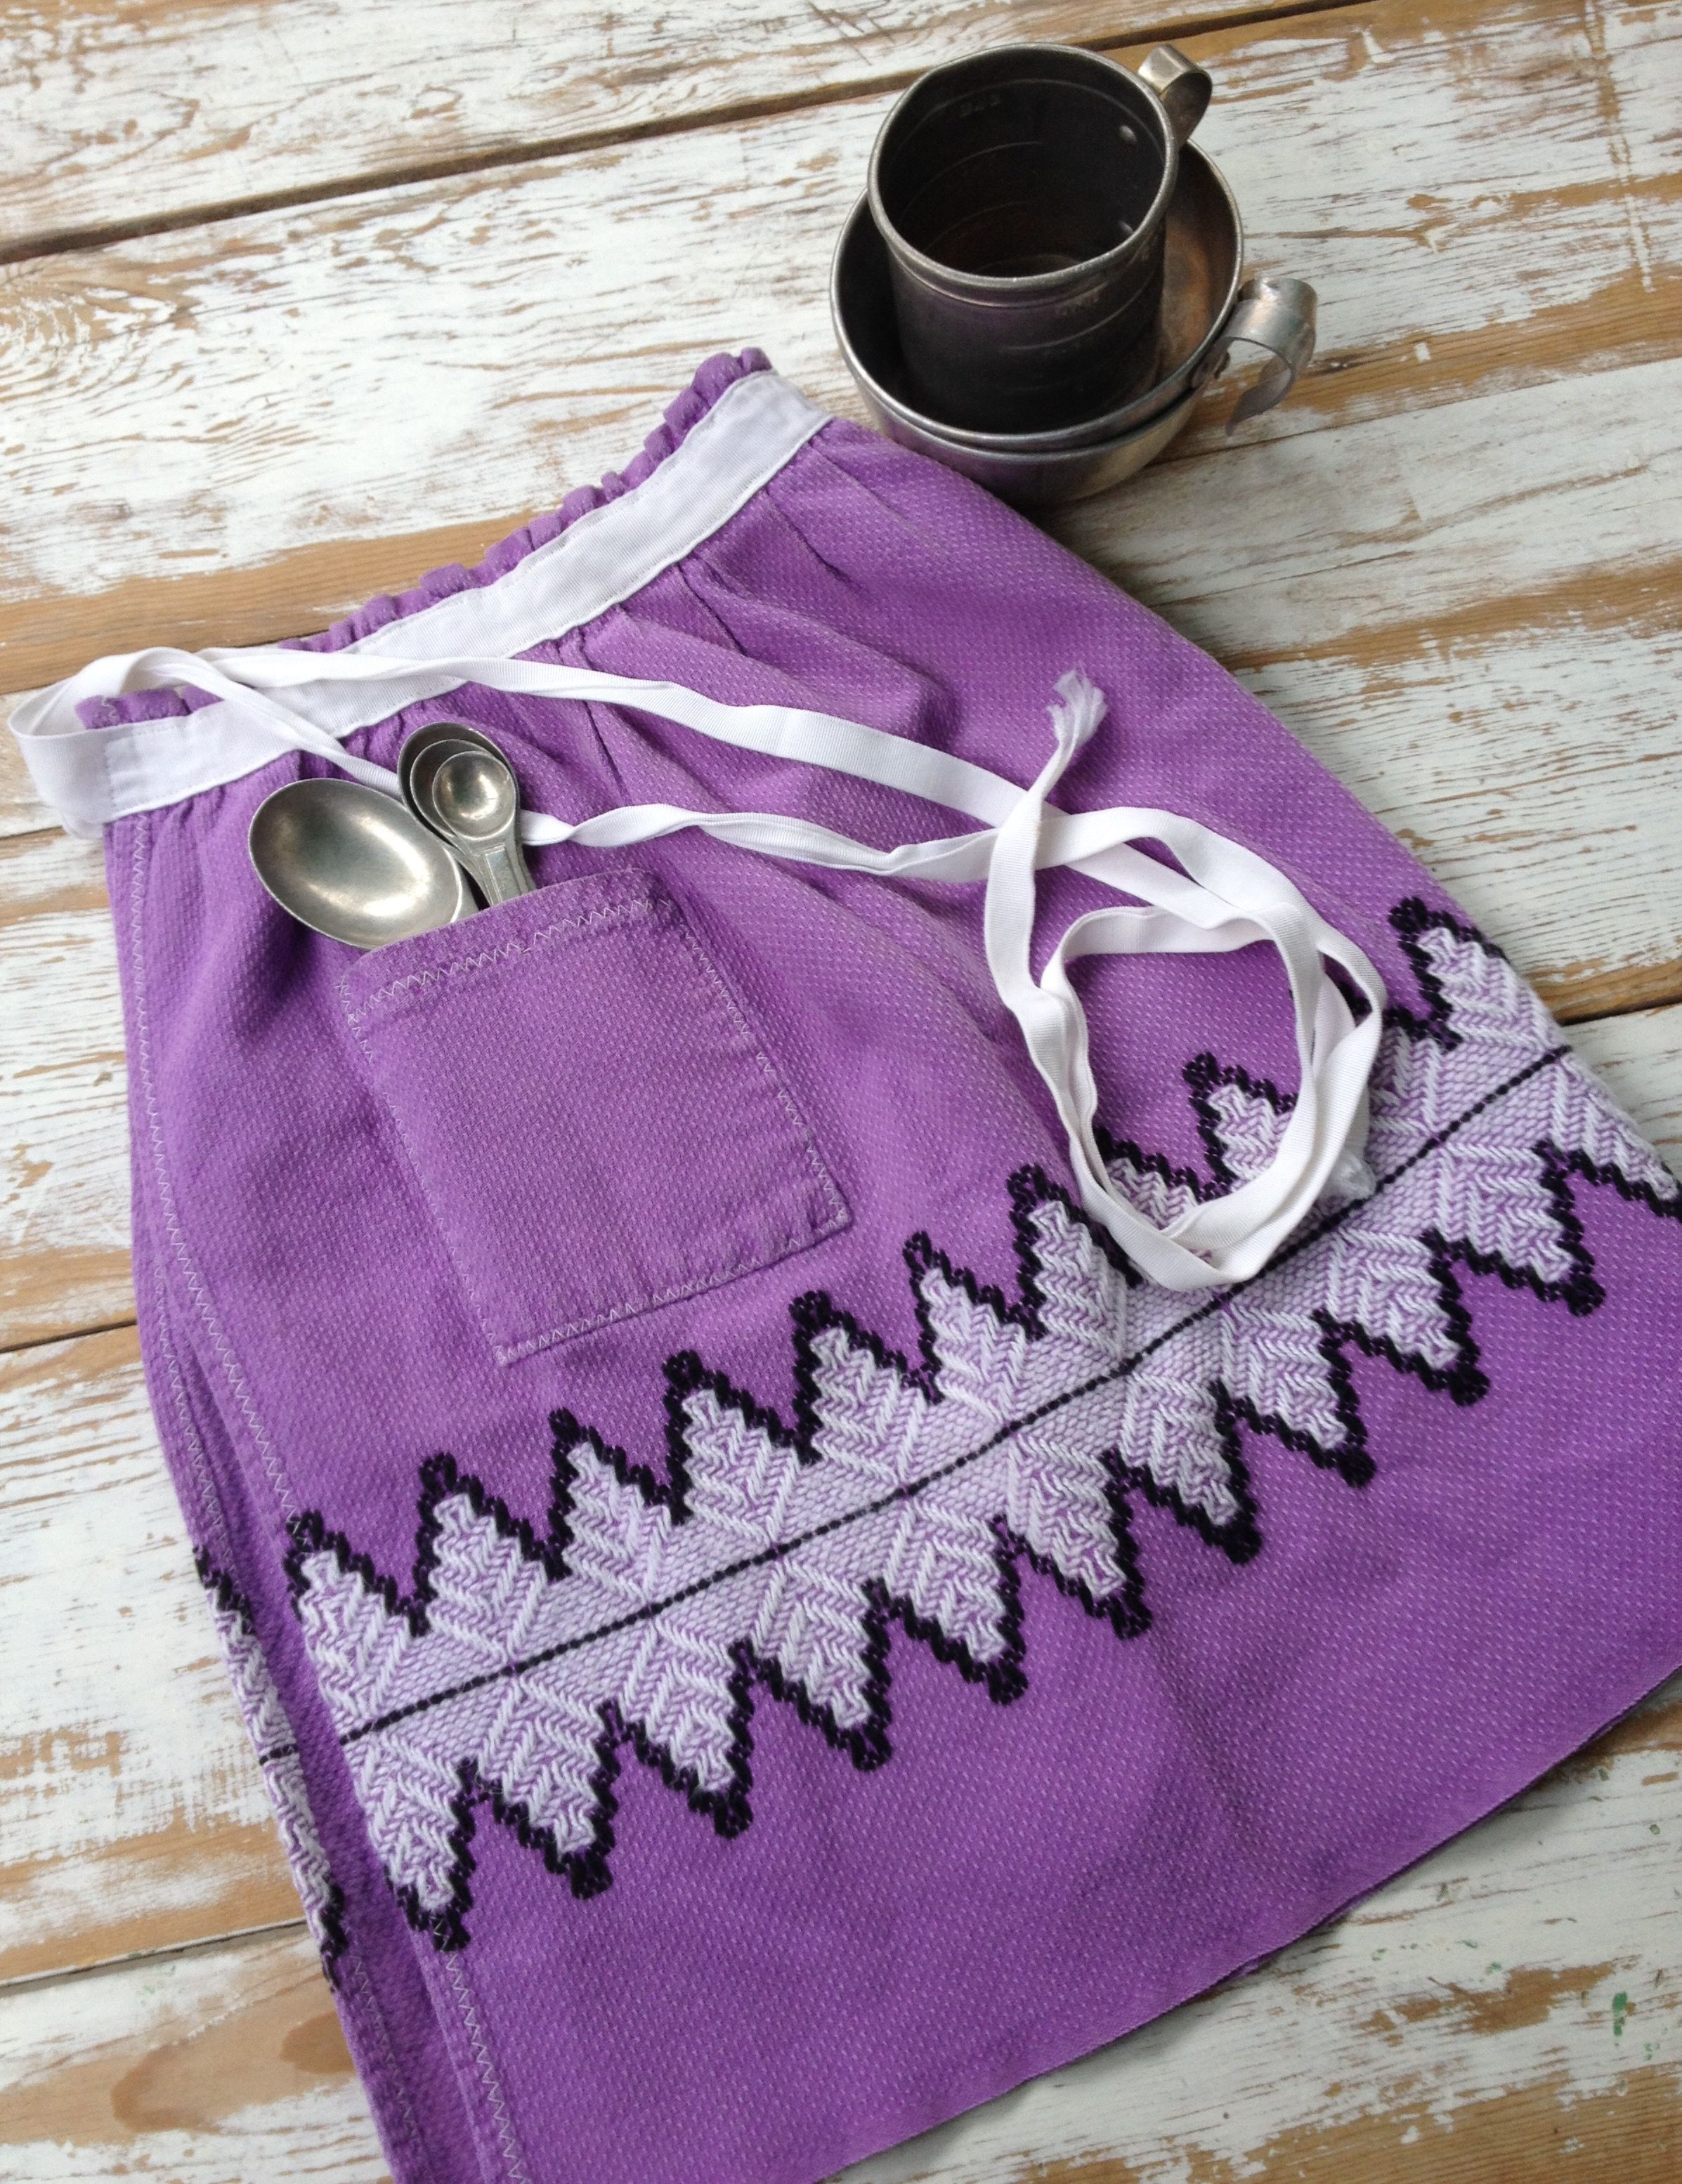 Vintage purple with white and black embroidery half apron .